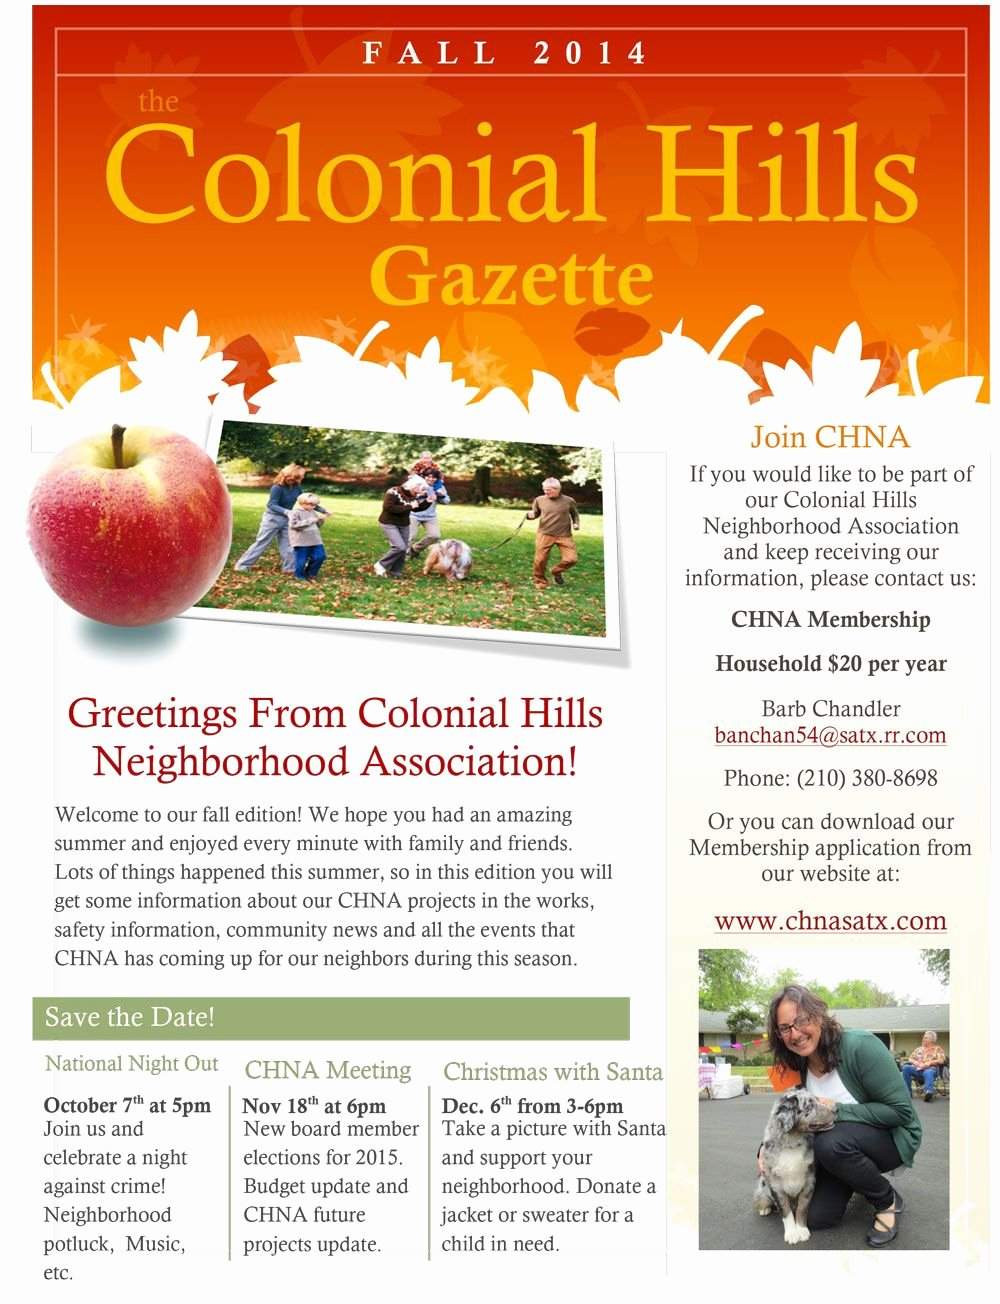 Homeowners association Newsletter Template Fresh Our Colonial Hills Neighborhood association Fall